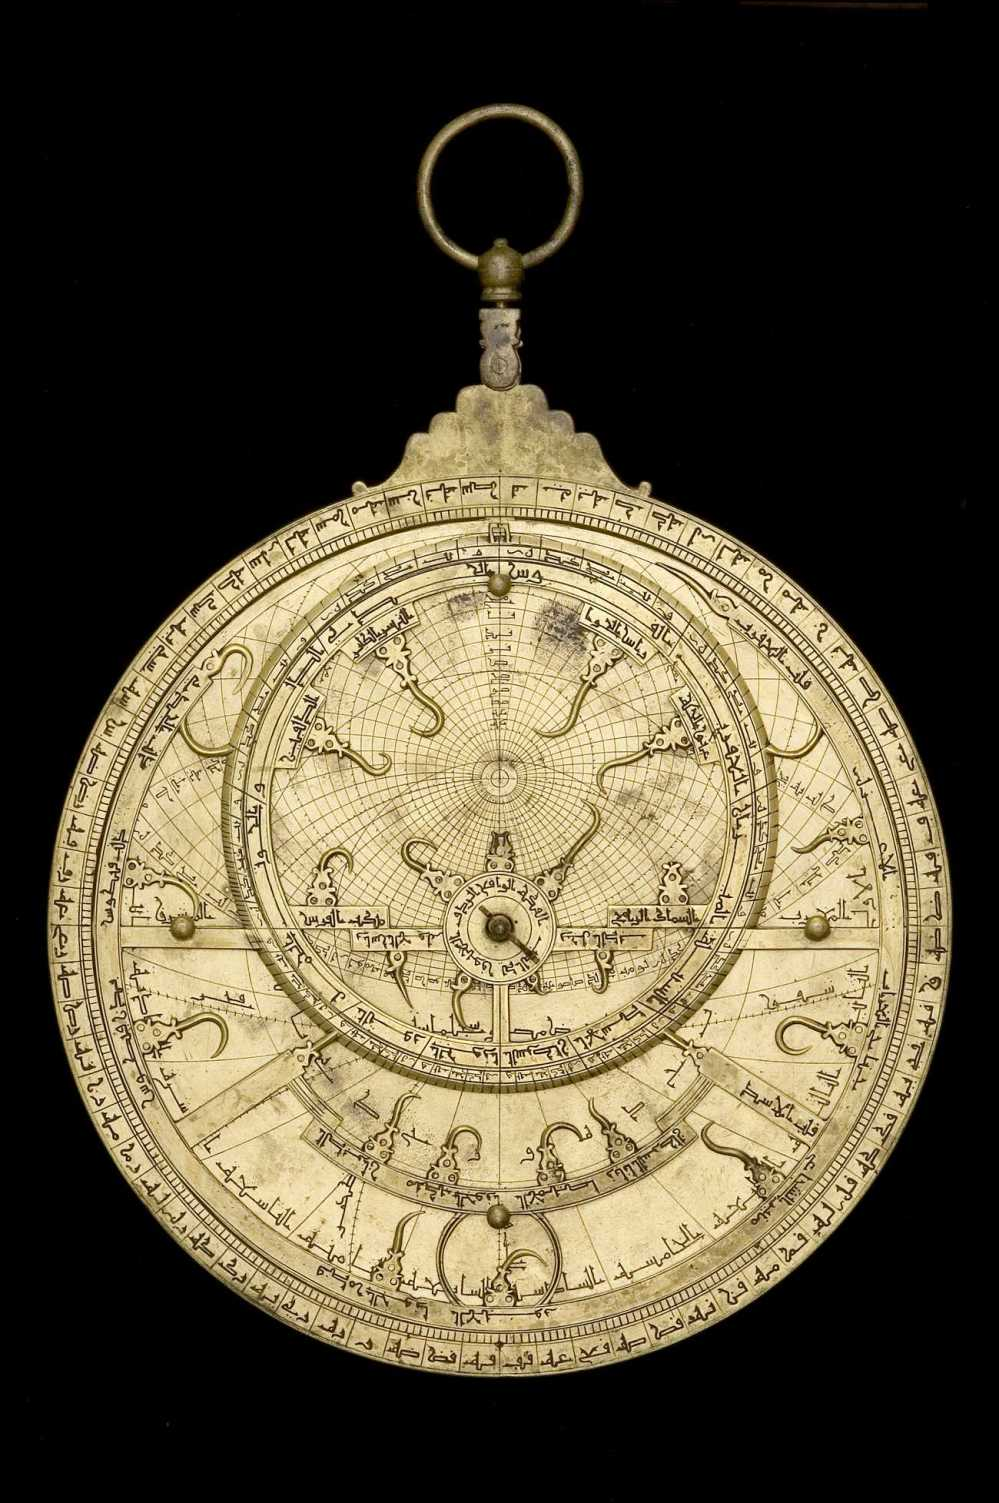 preview image for Astrolabe, by Muhammad ibn Ahmad al-Battuti, North African, 1733/4